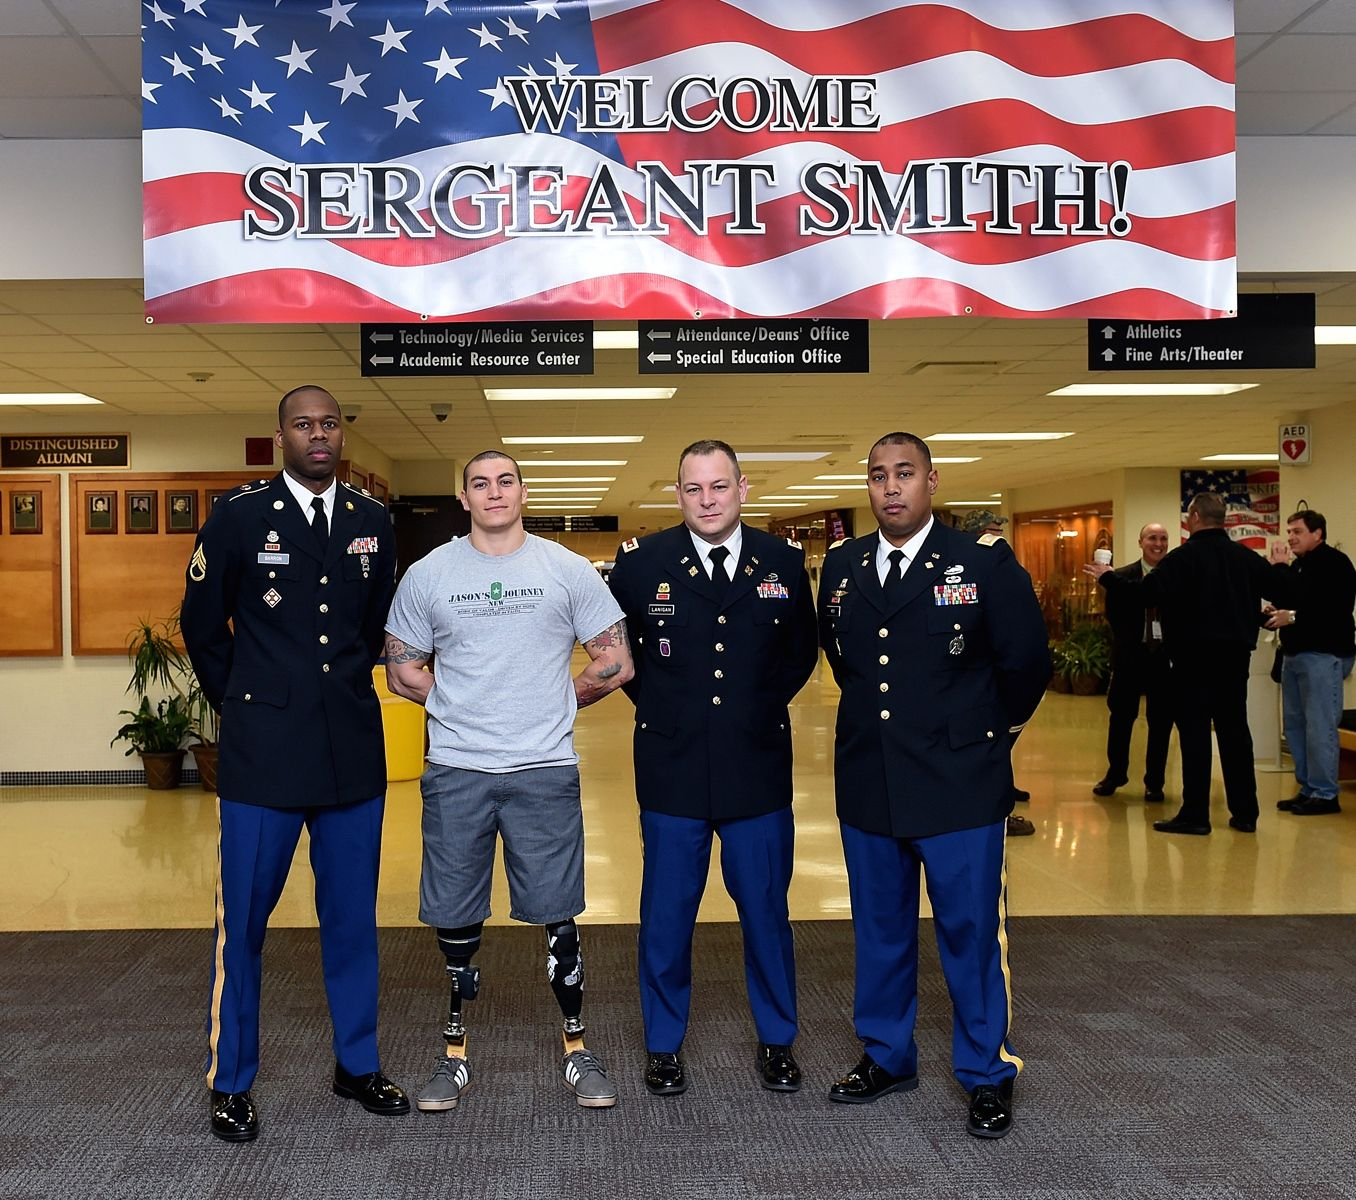 Sgt. Smith greeted - Army 85th Support Command